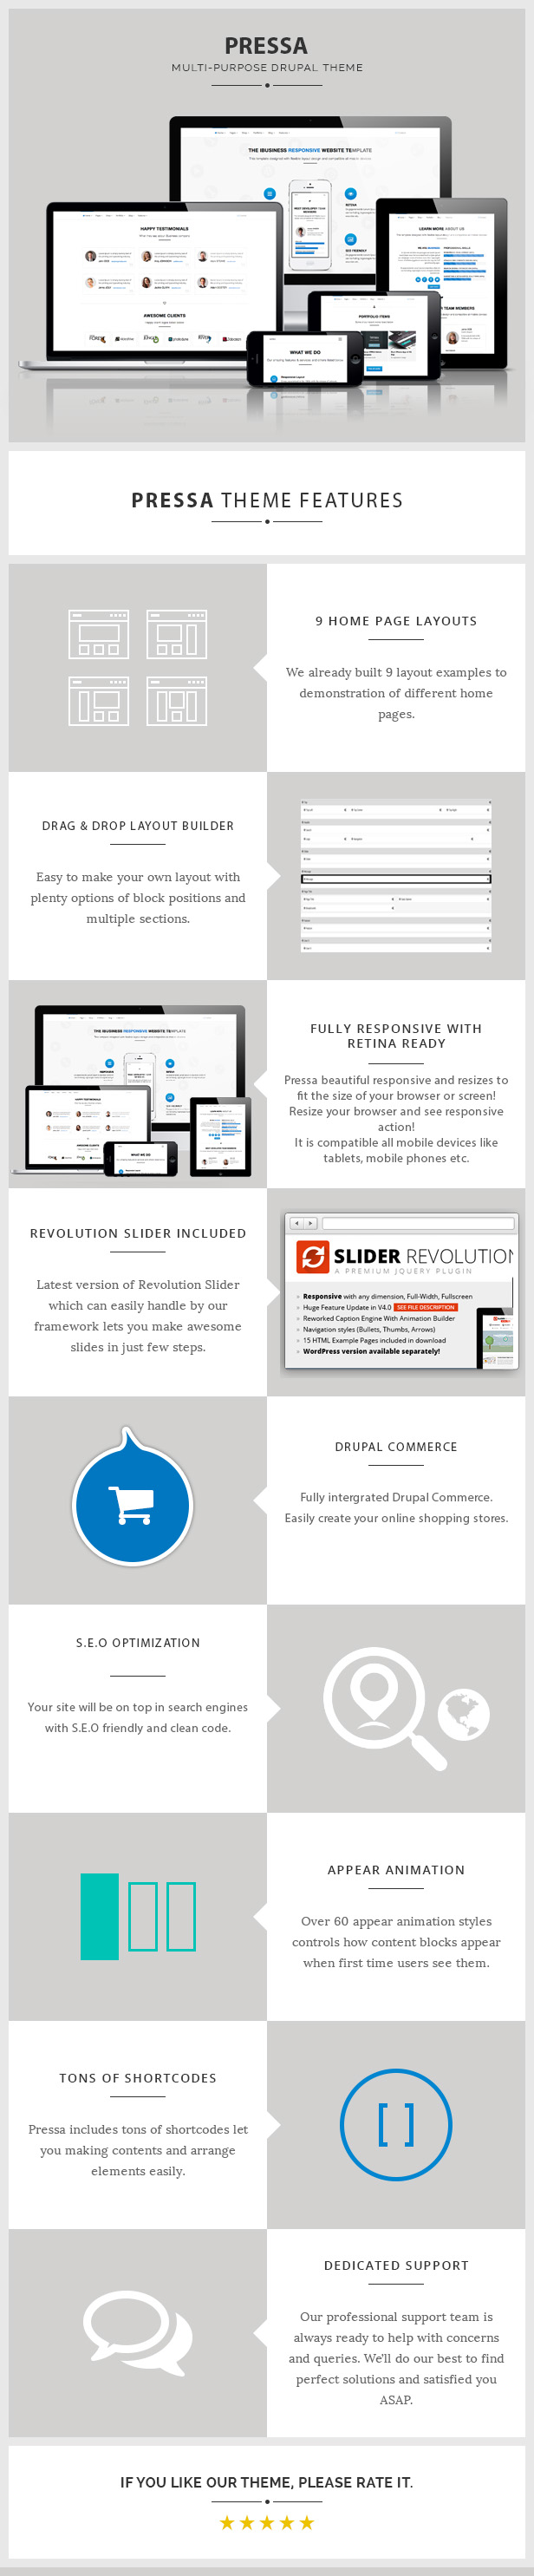 Pressa - Multi-Purpose, eCommerce Drupal Theme